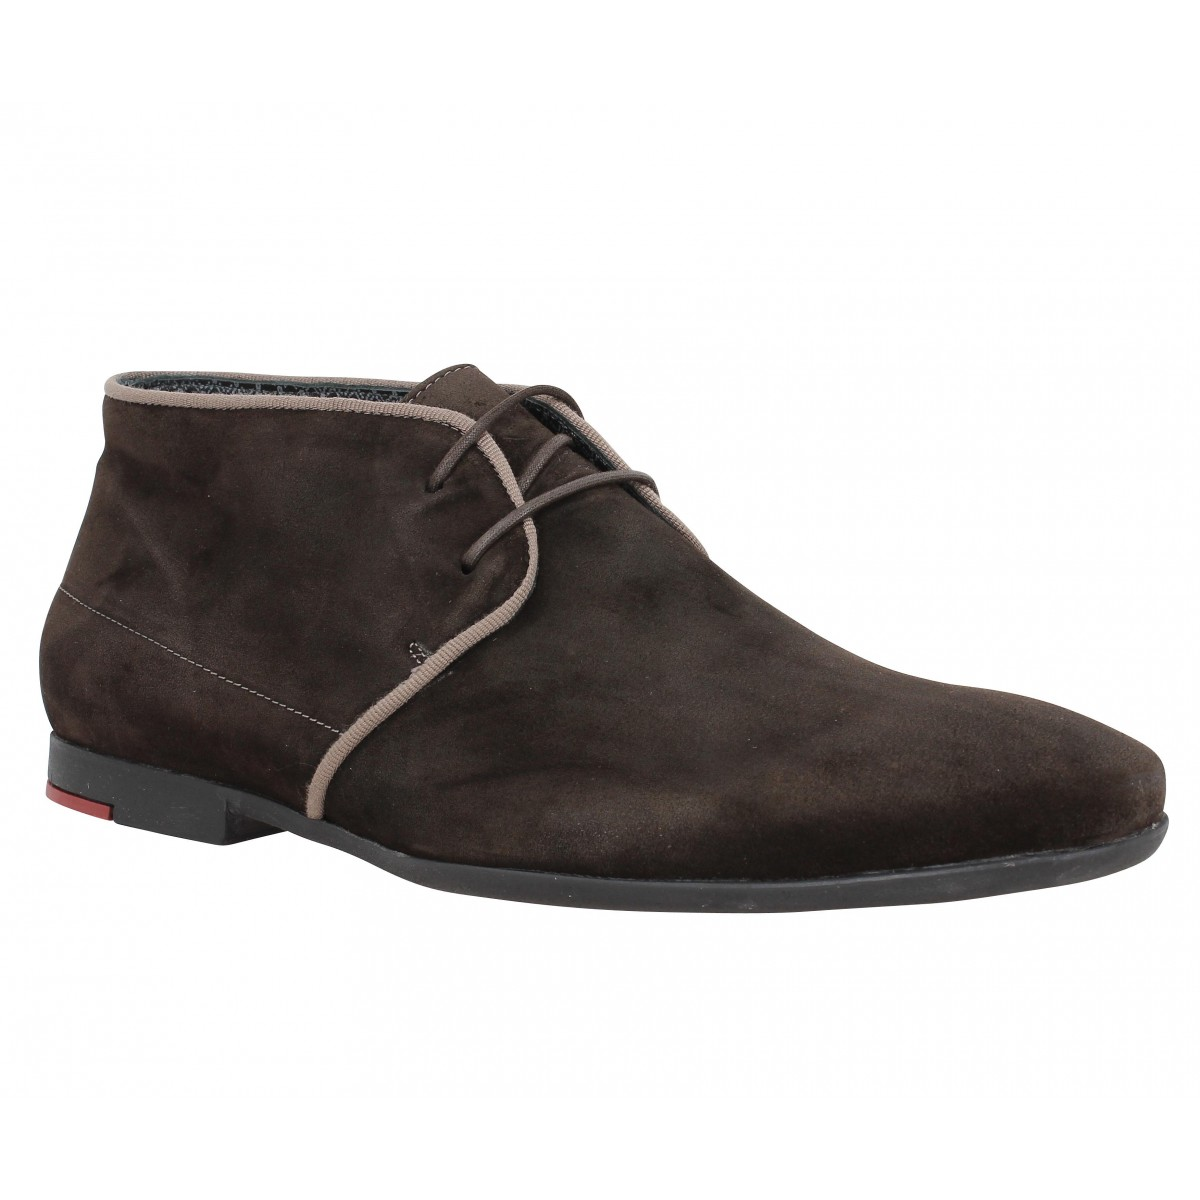 Bottines PAUL & JOE Prayer velours Homme Marron